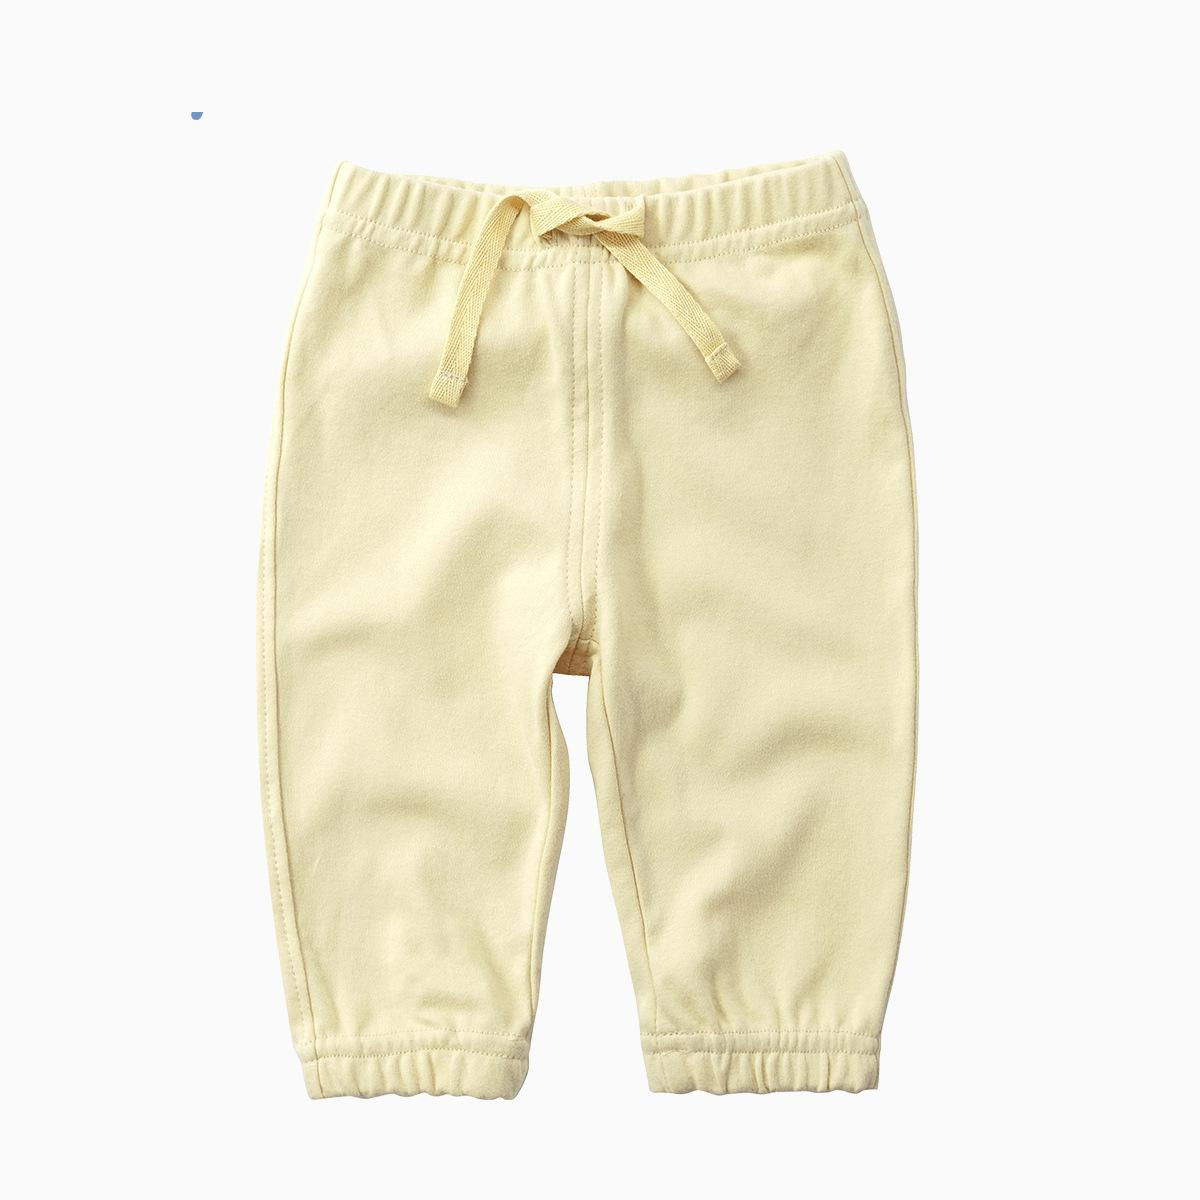 orangemom newborn -24M Cotton Pants 100% cotton baby clothes for infant girl and boy trousers